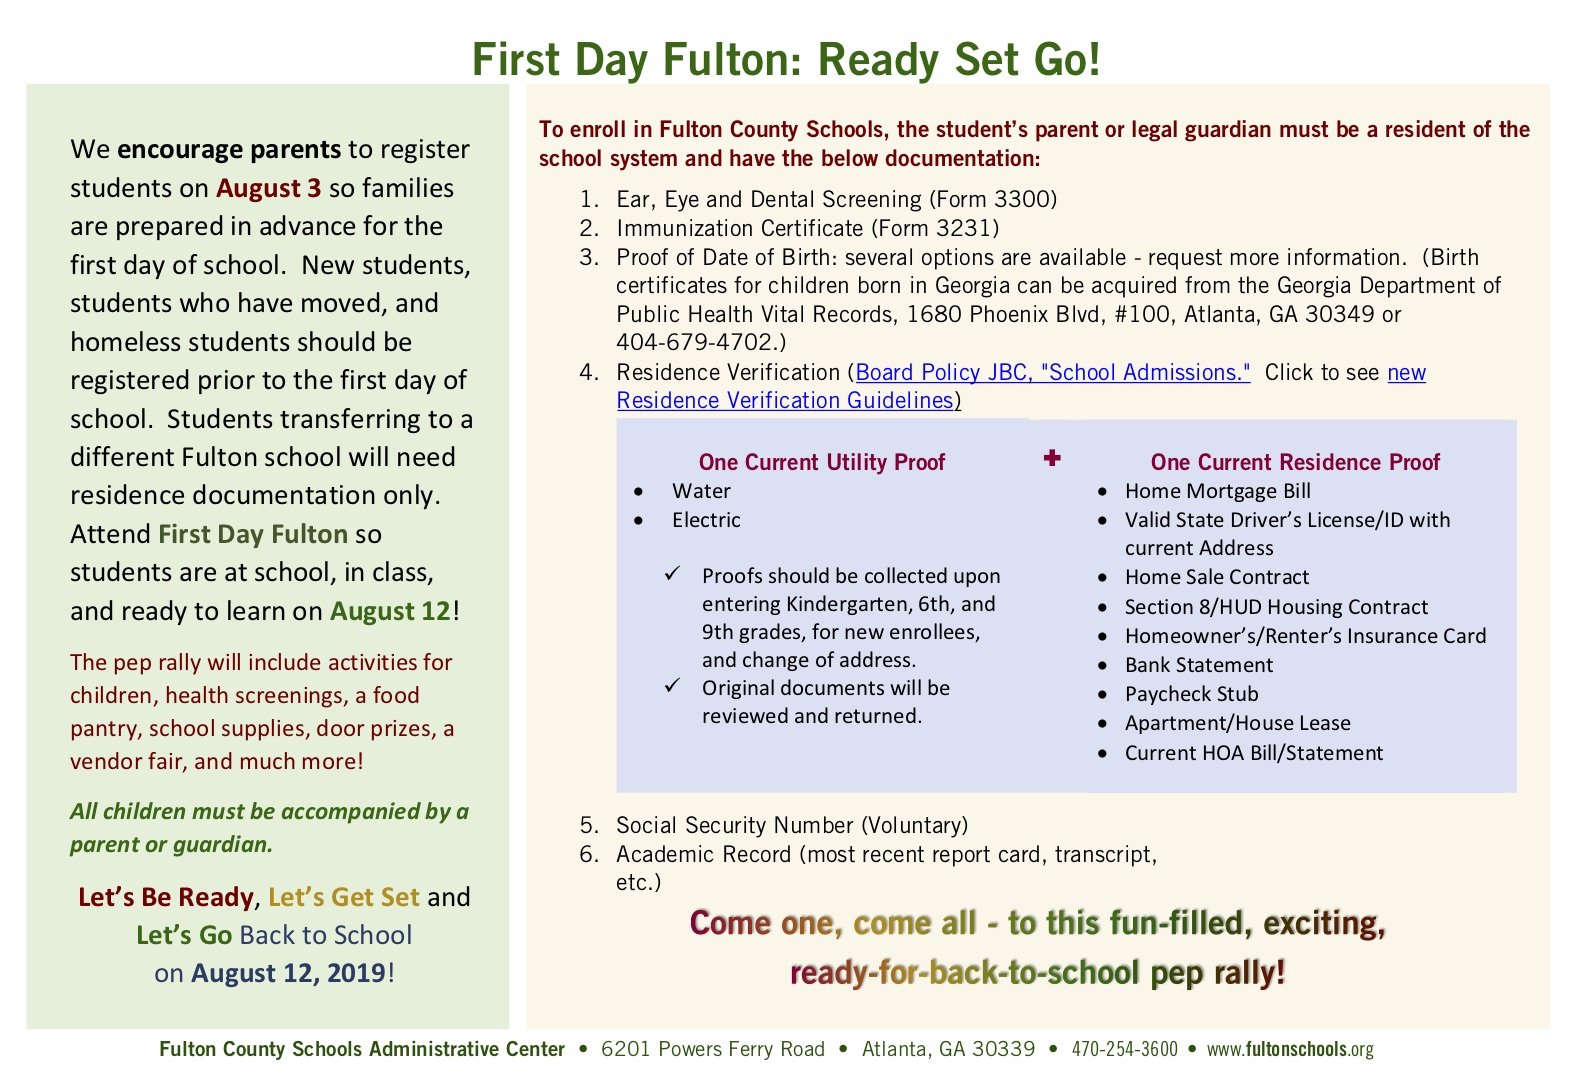 Meet MacKid at FCS First Day Fulton Back-to-School Pep Rally